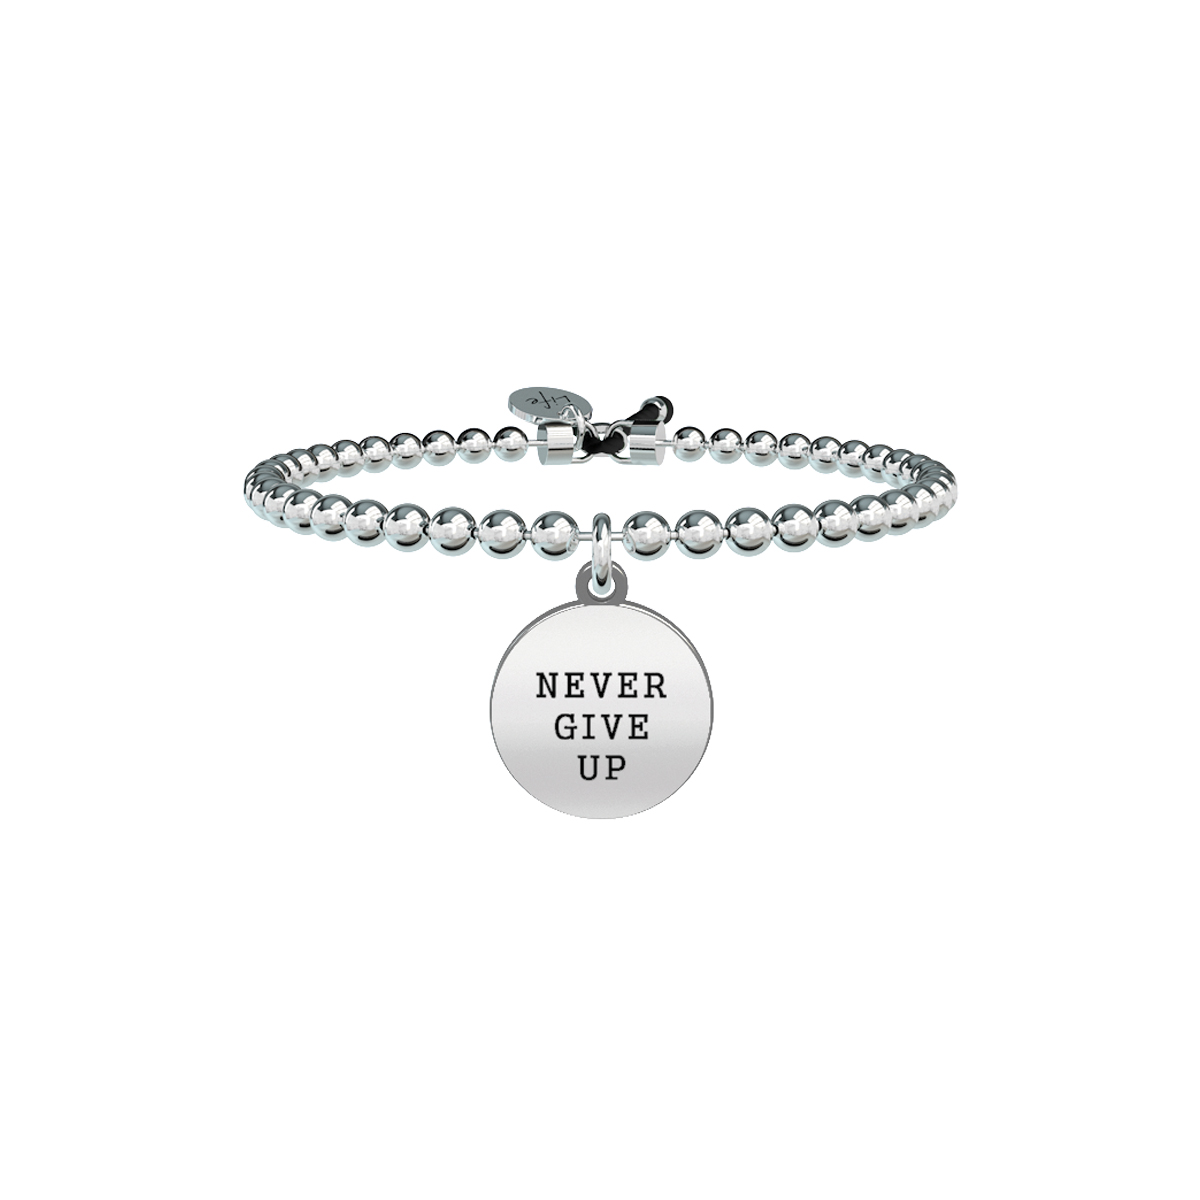 Bracciale KIDULT Philosophy acciaio 316L 731430 Never give up